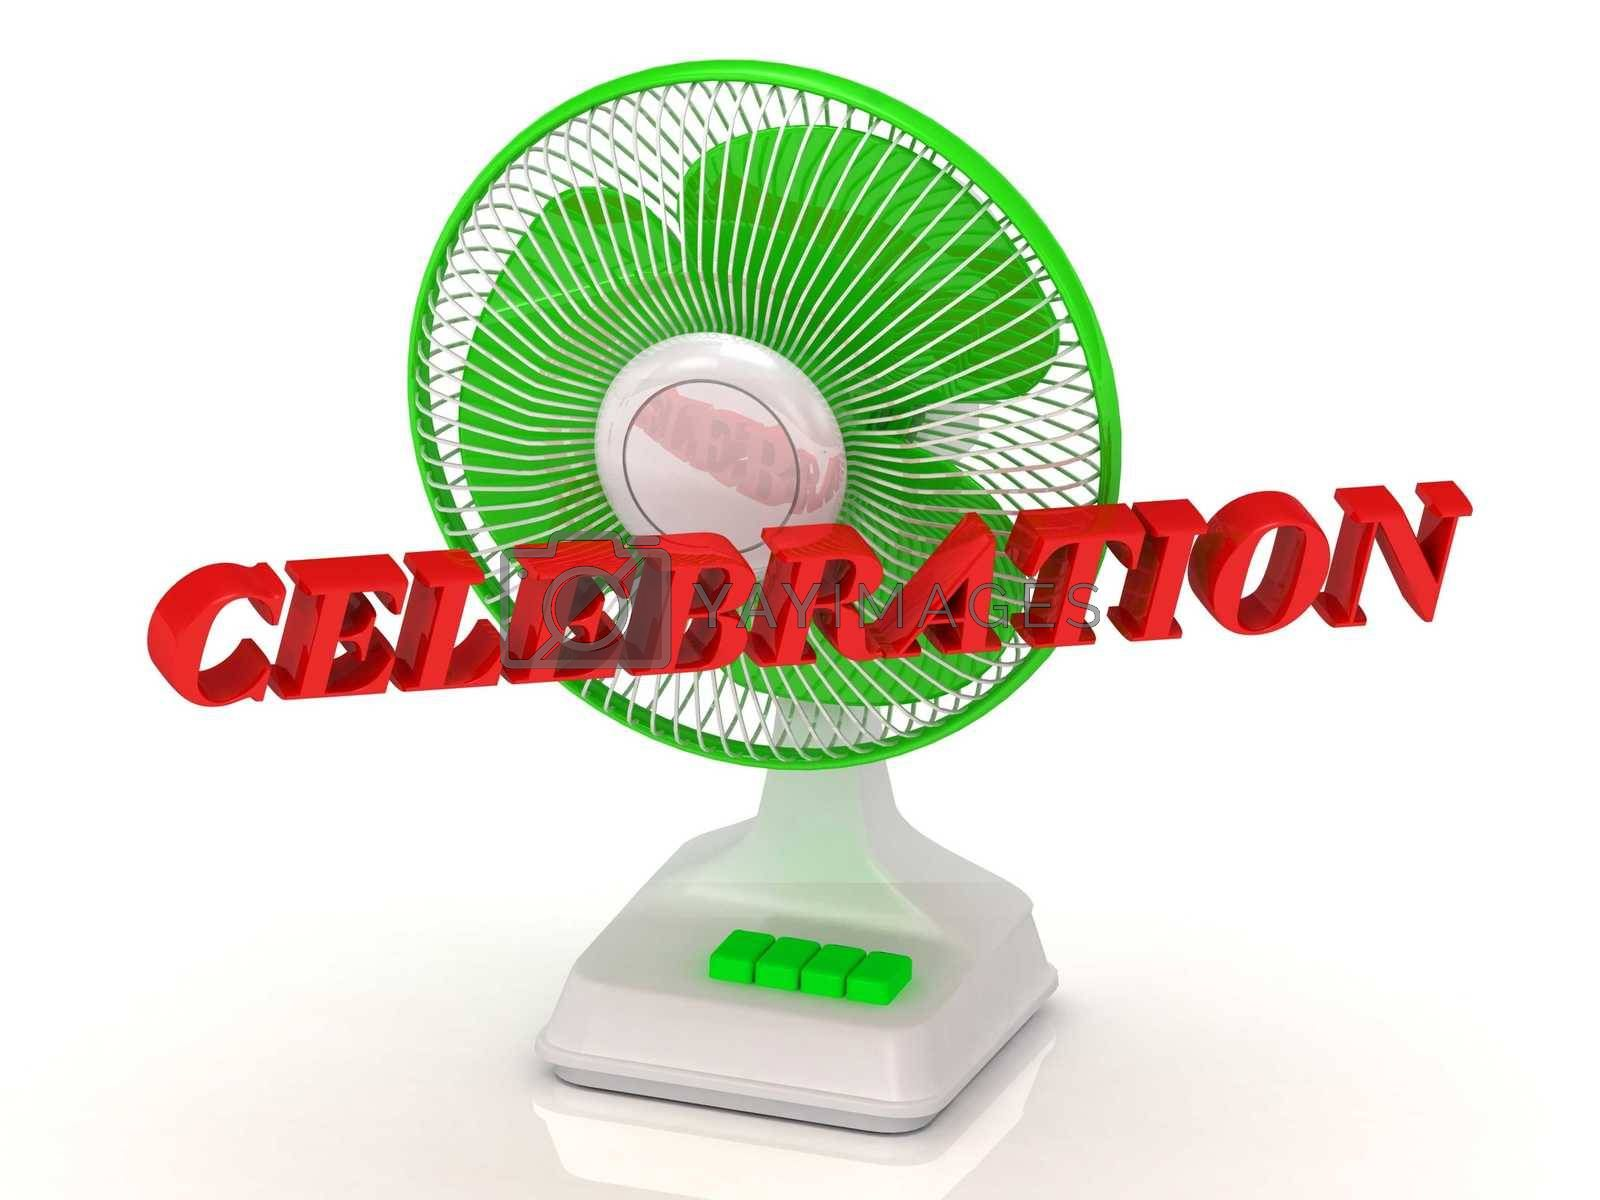 CELEBRATION- Green Fan propeller and bright color letters on a white background